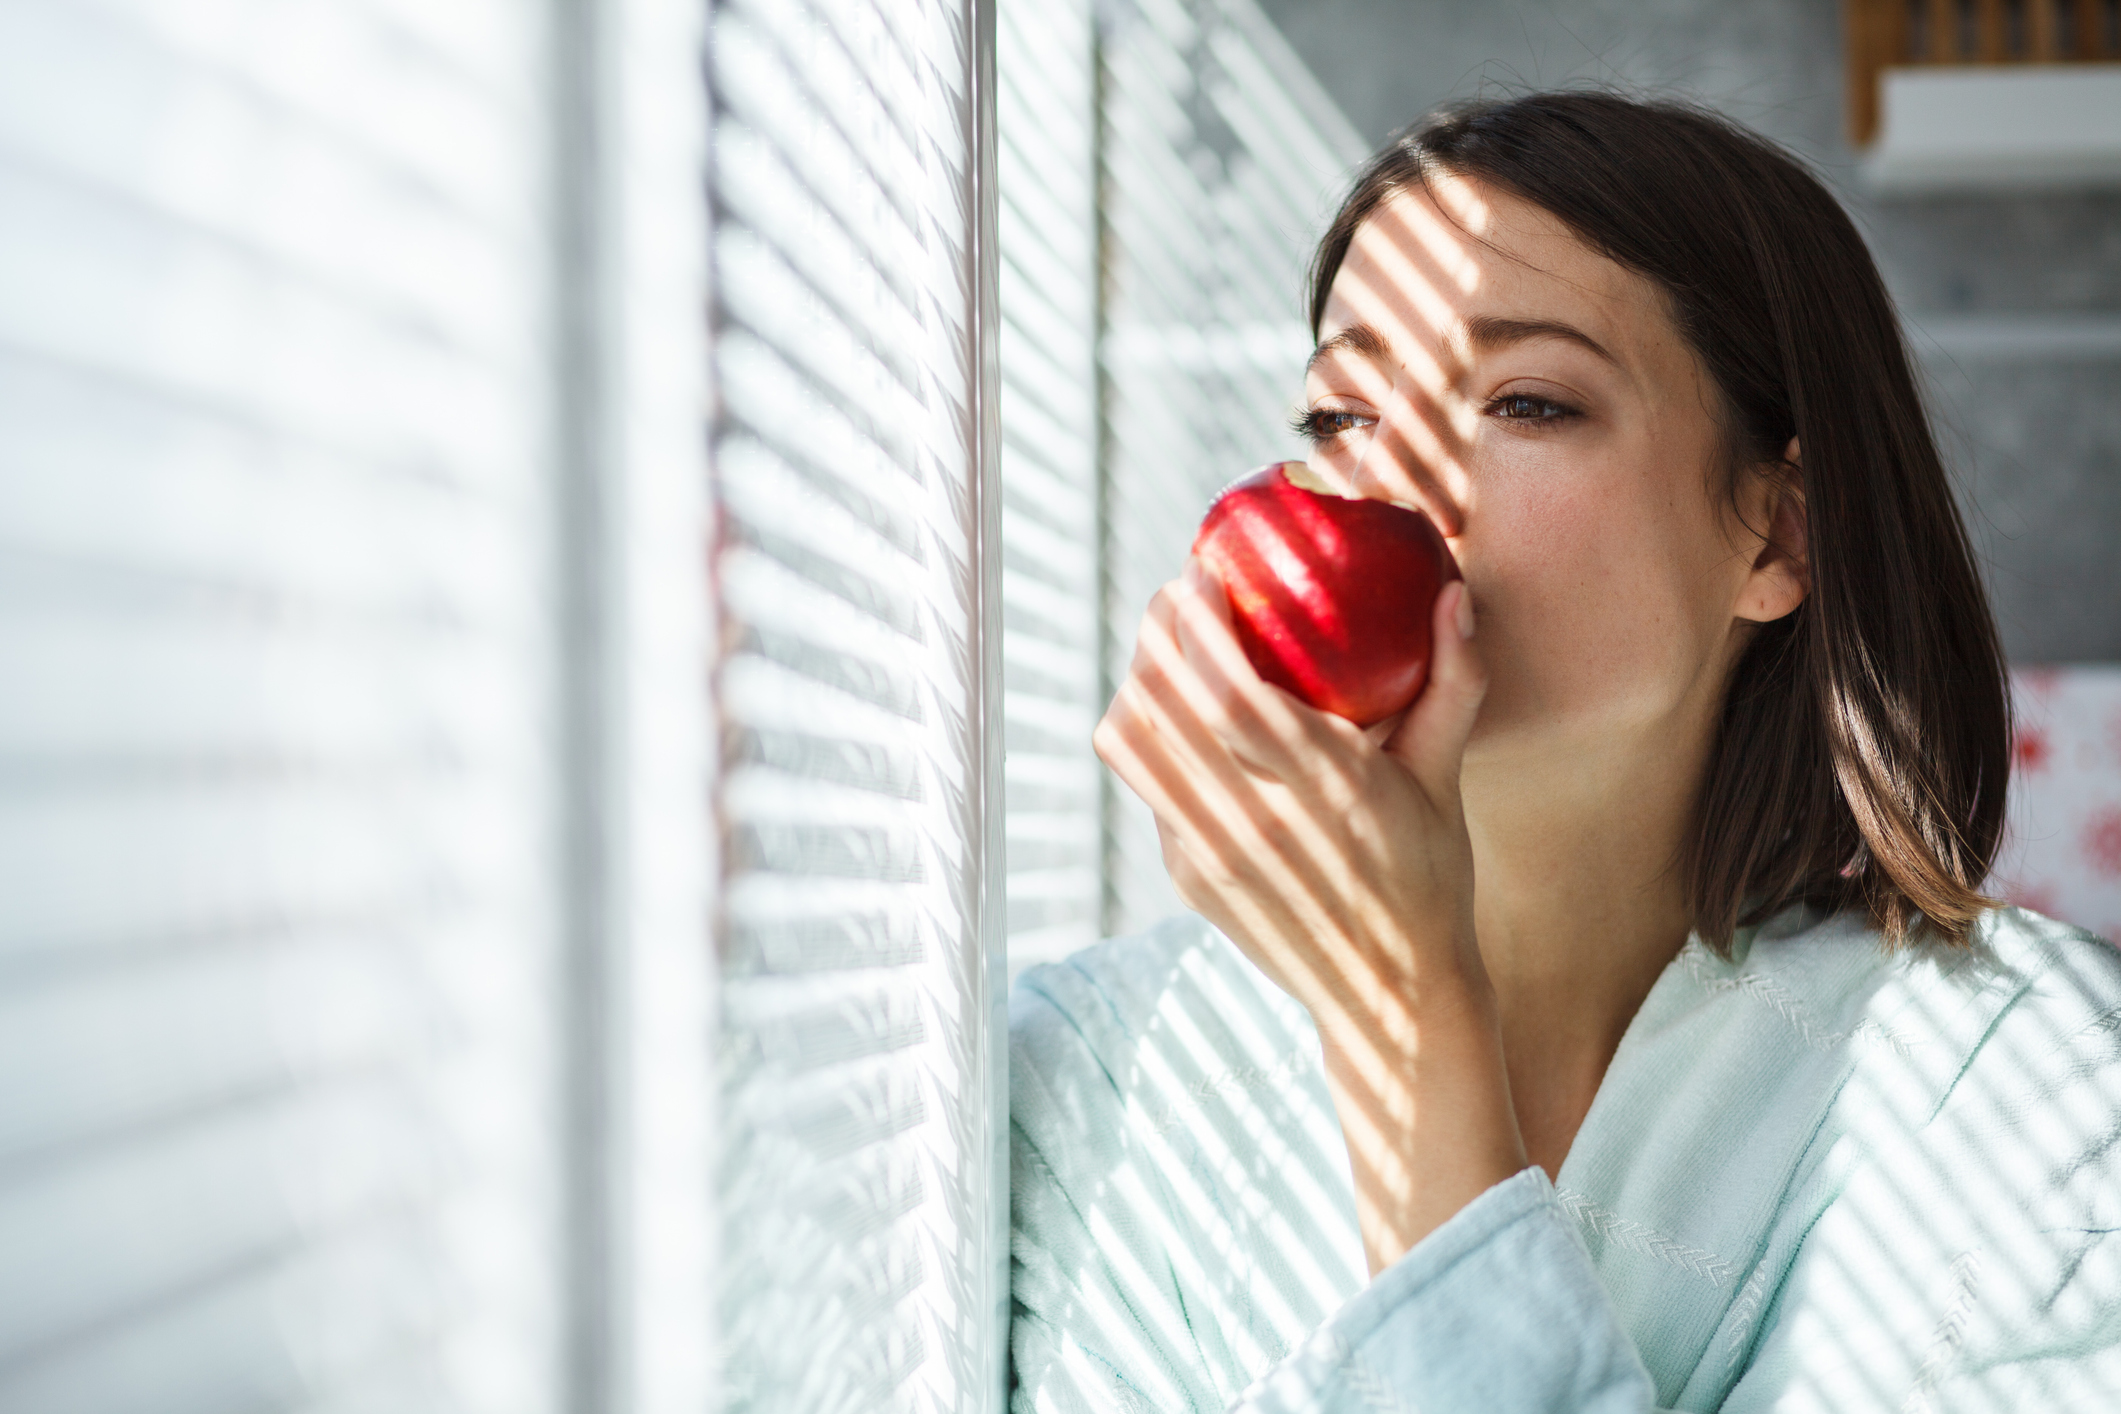 Copy space shot of a young woman in bathrobe eating an apple by the window.